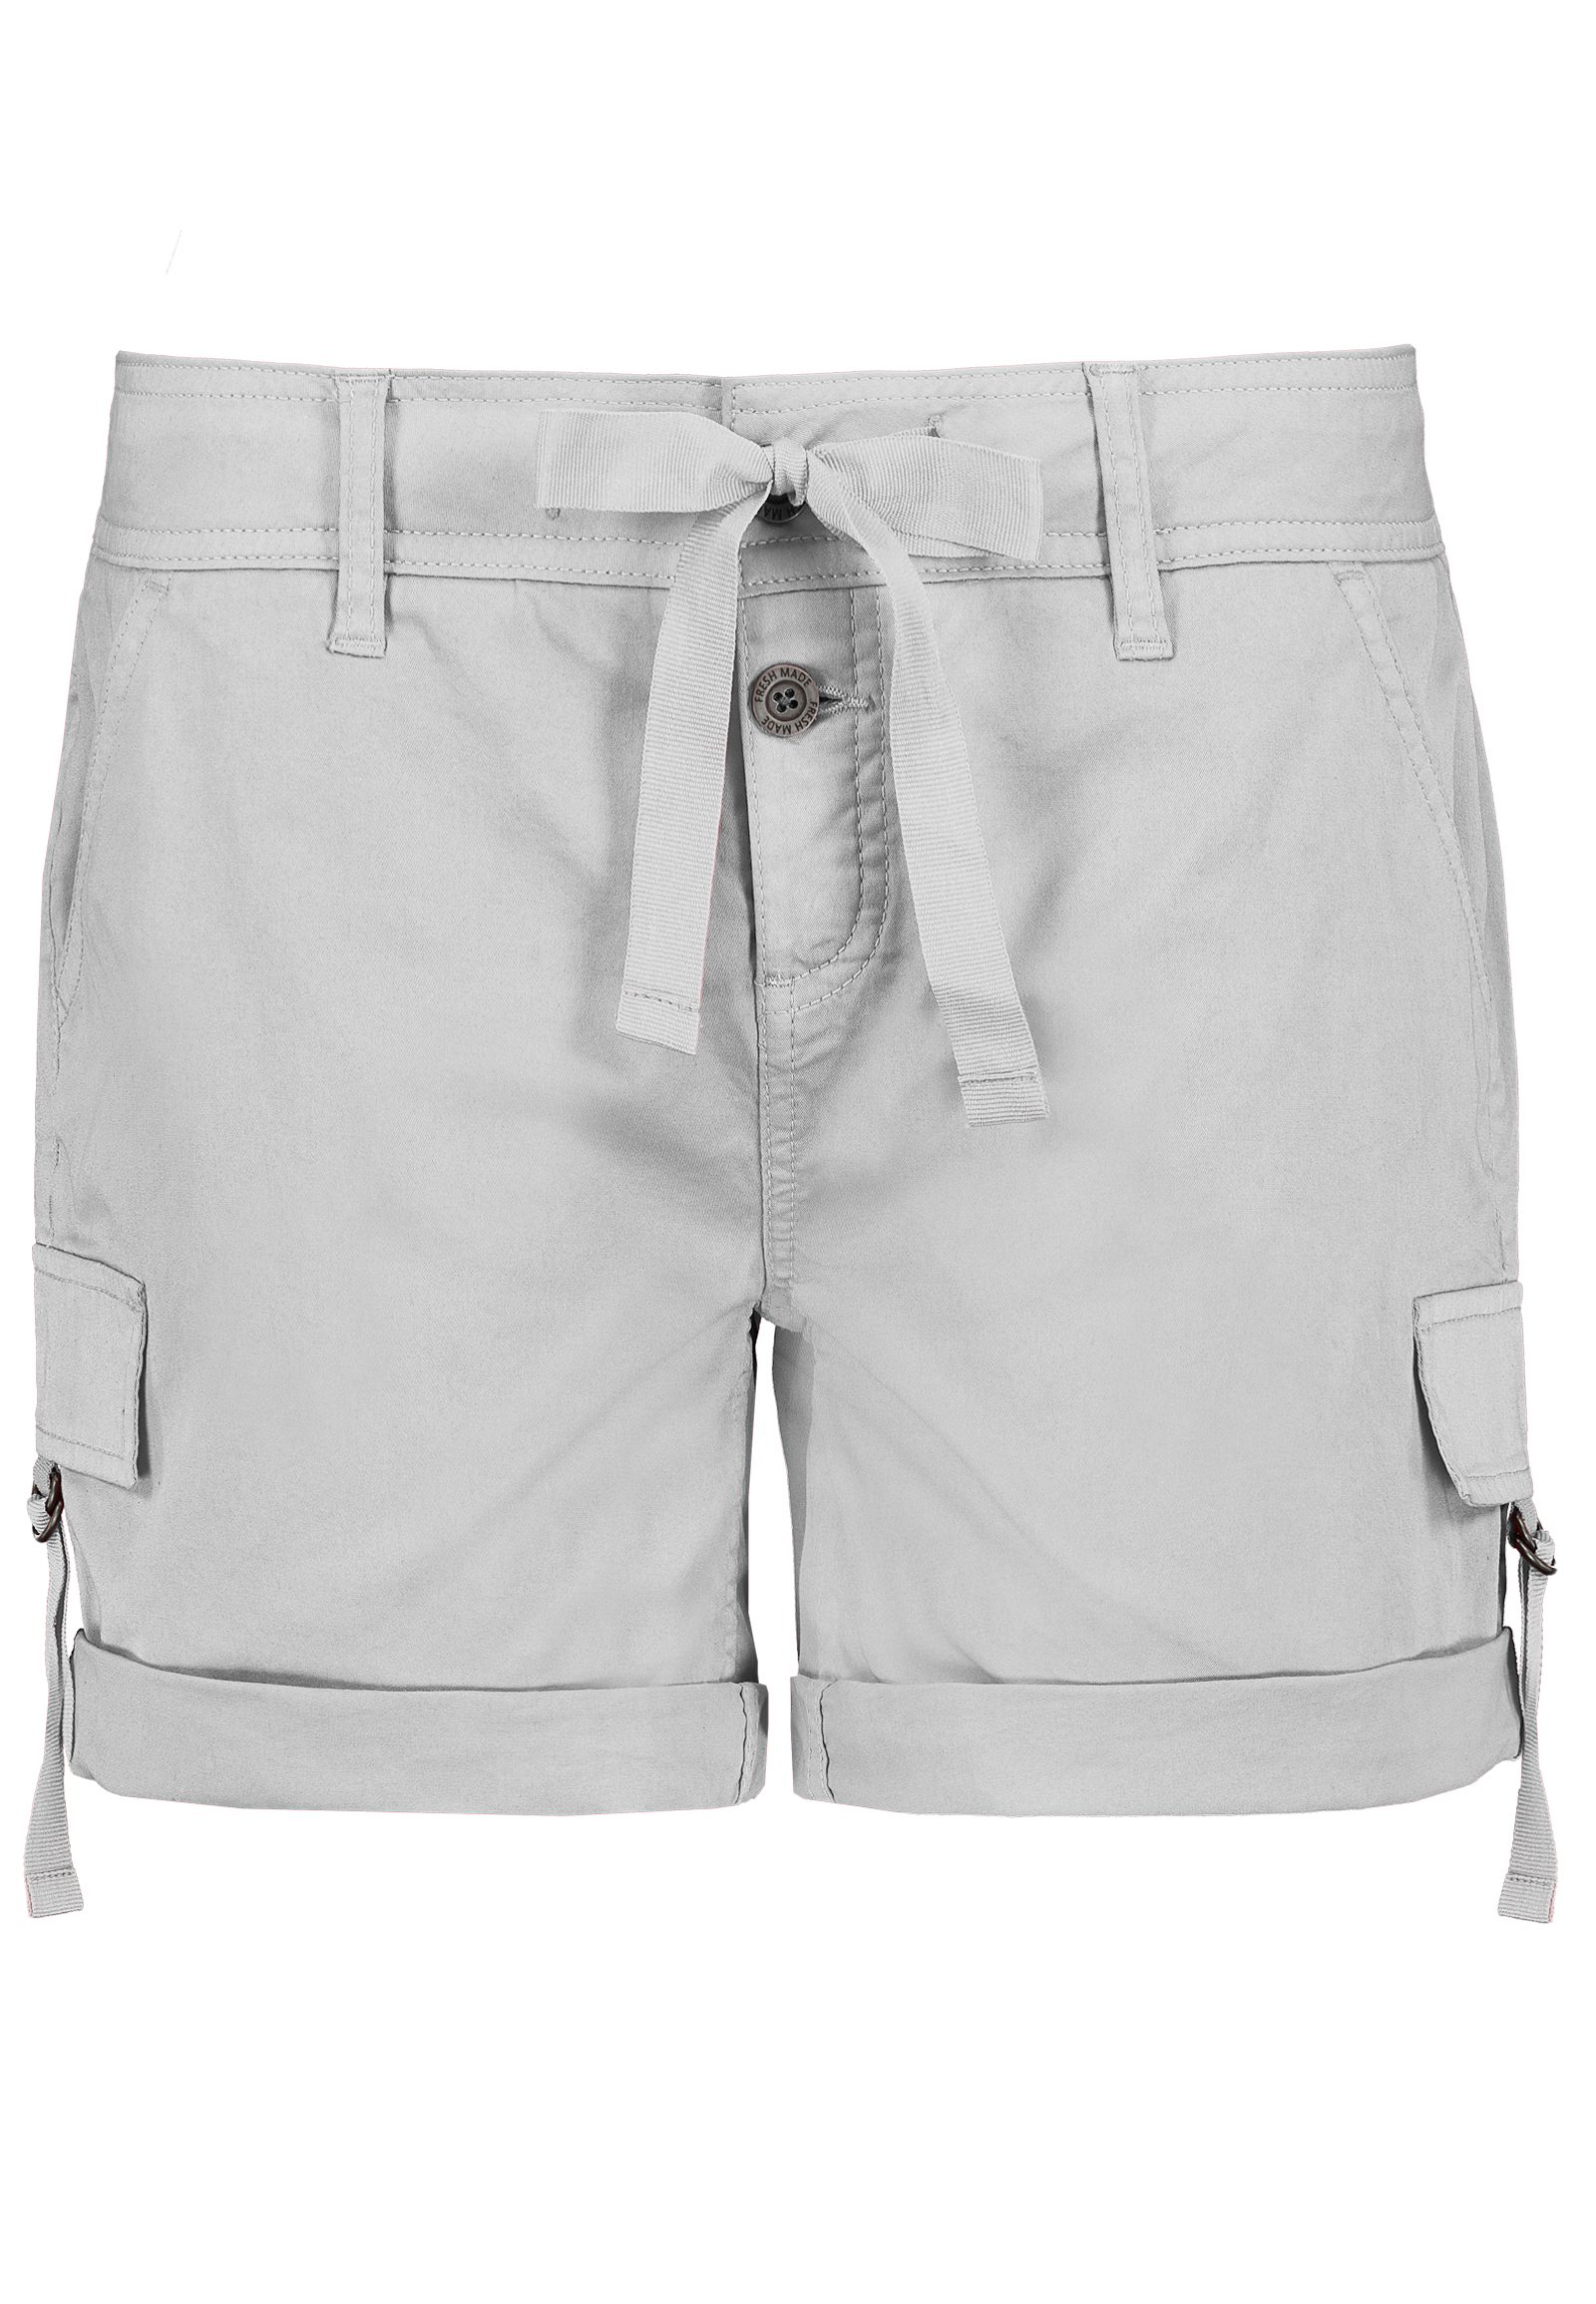 Hosen - Shorts mit Satinbändern › Fresh Made › grau  - Onlineshop FASHION5